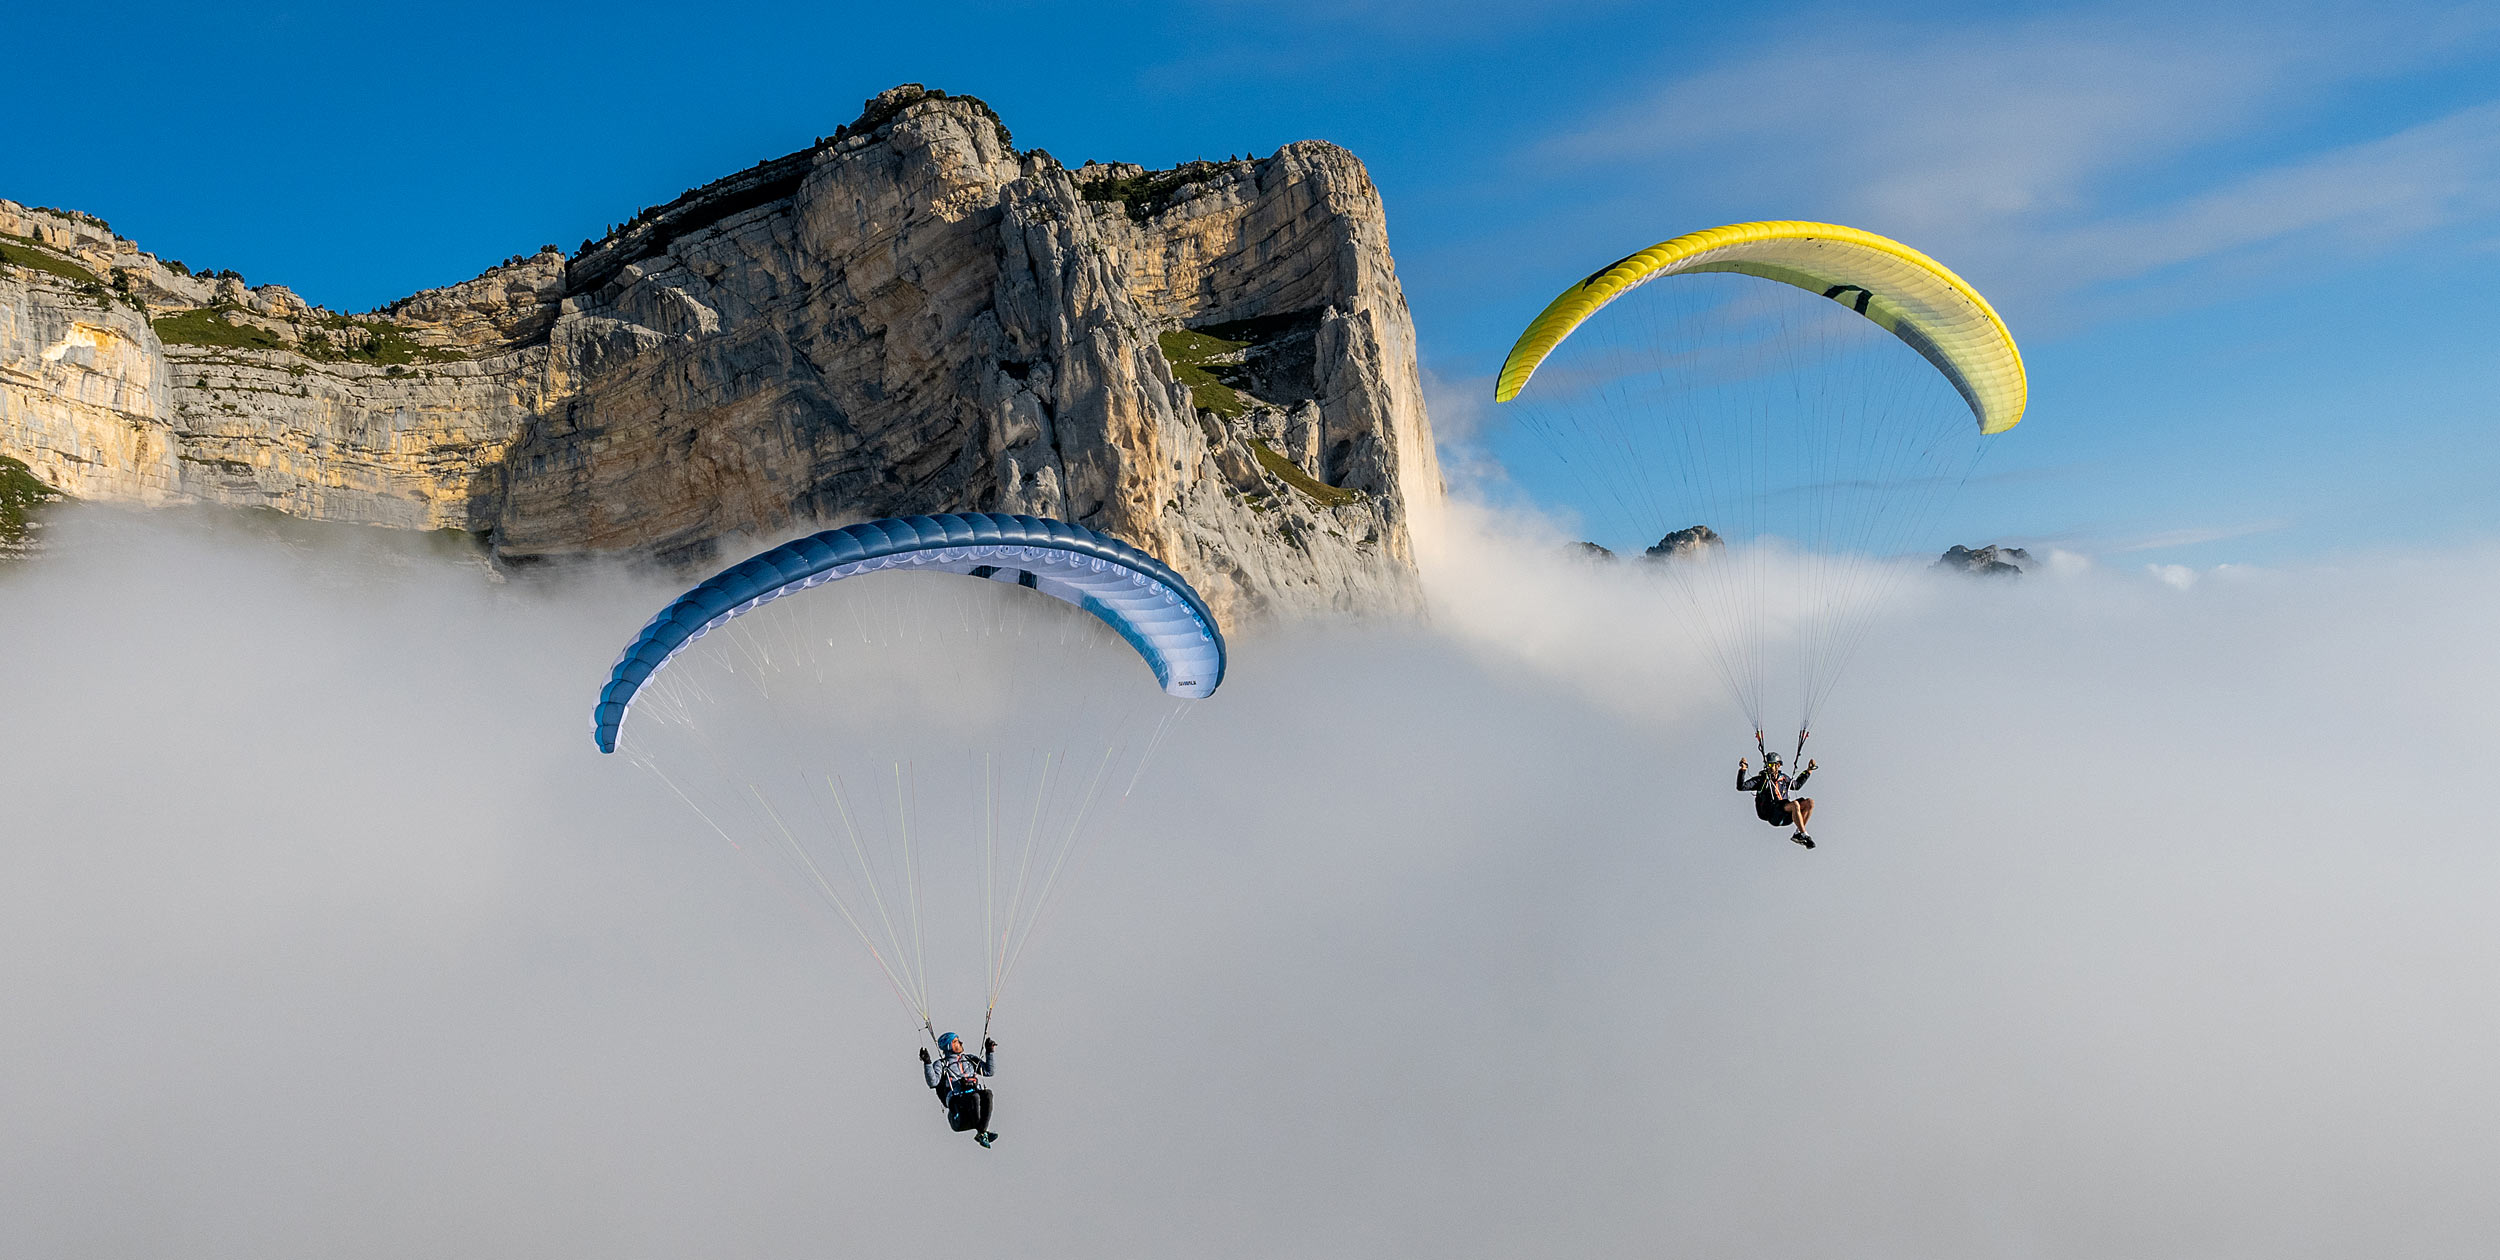 Soaring above the clouds at the 2021 Coupe Icare